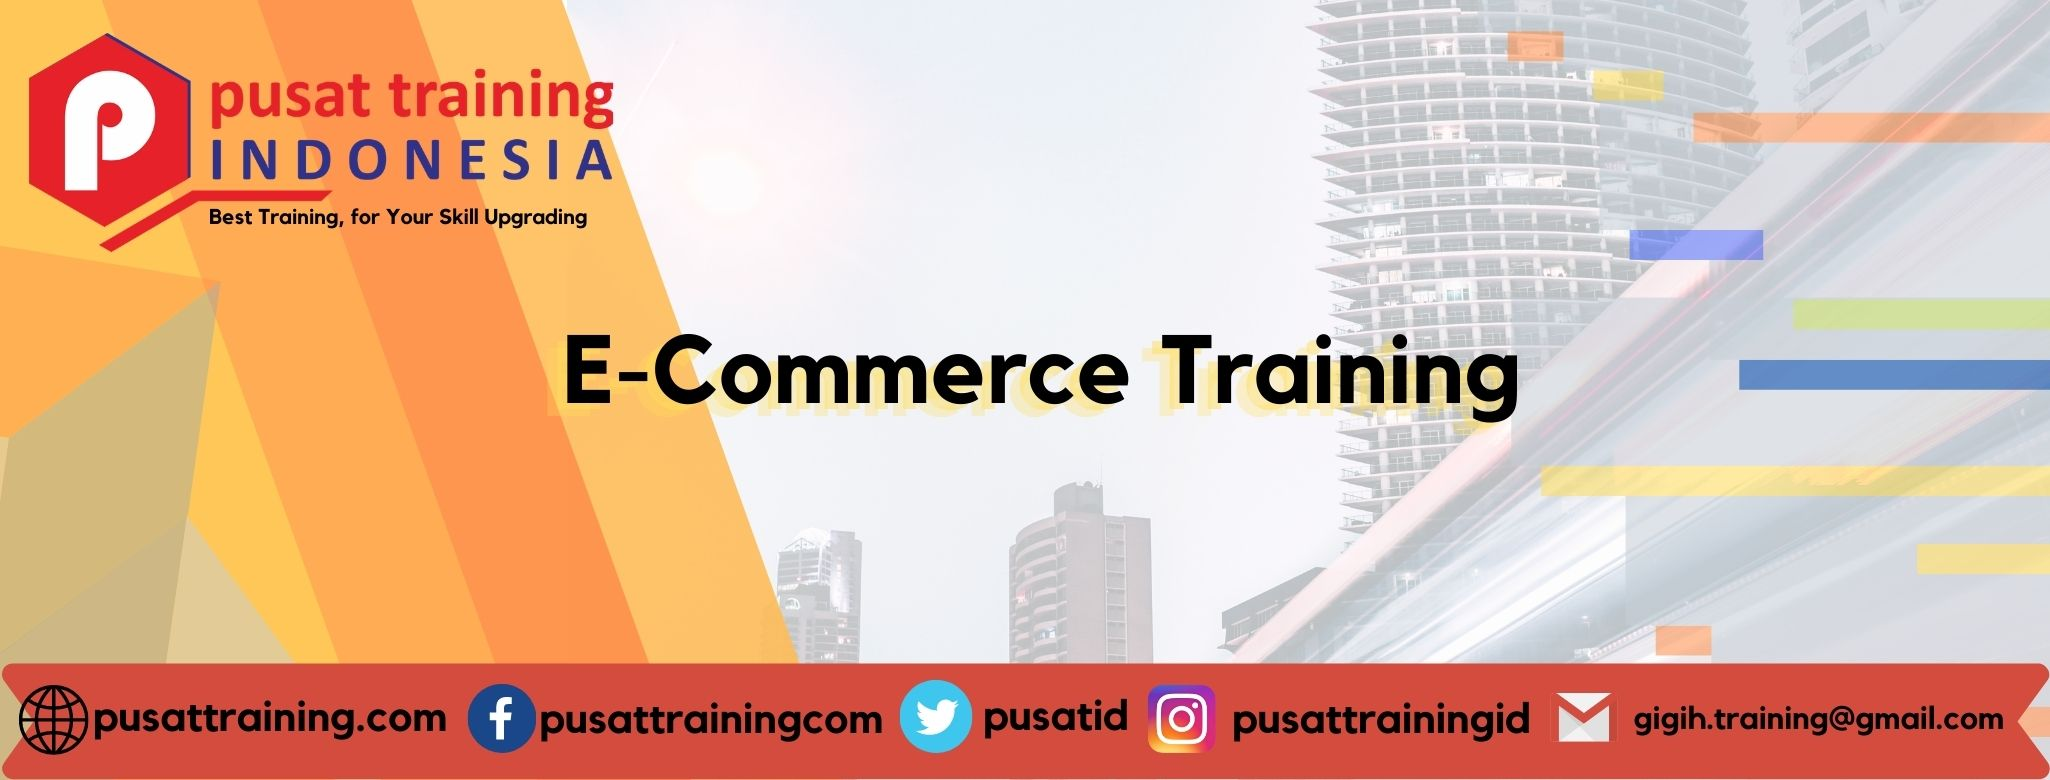 E-Commerce Training